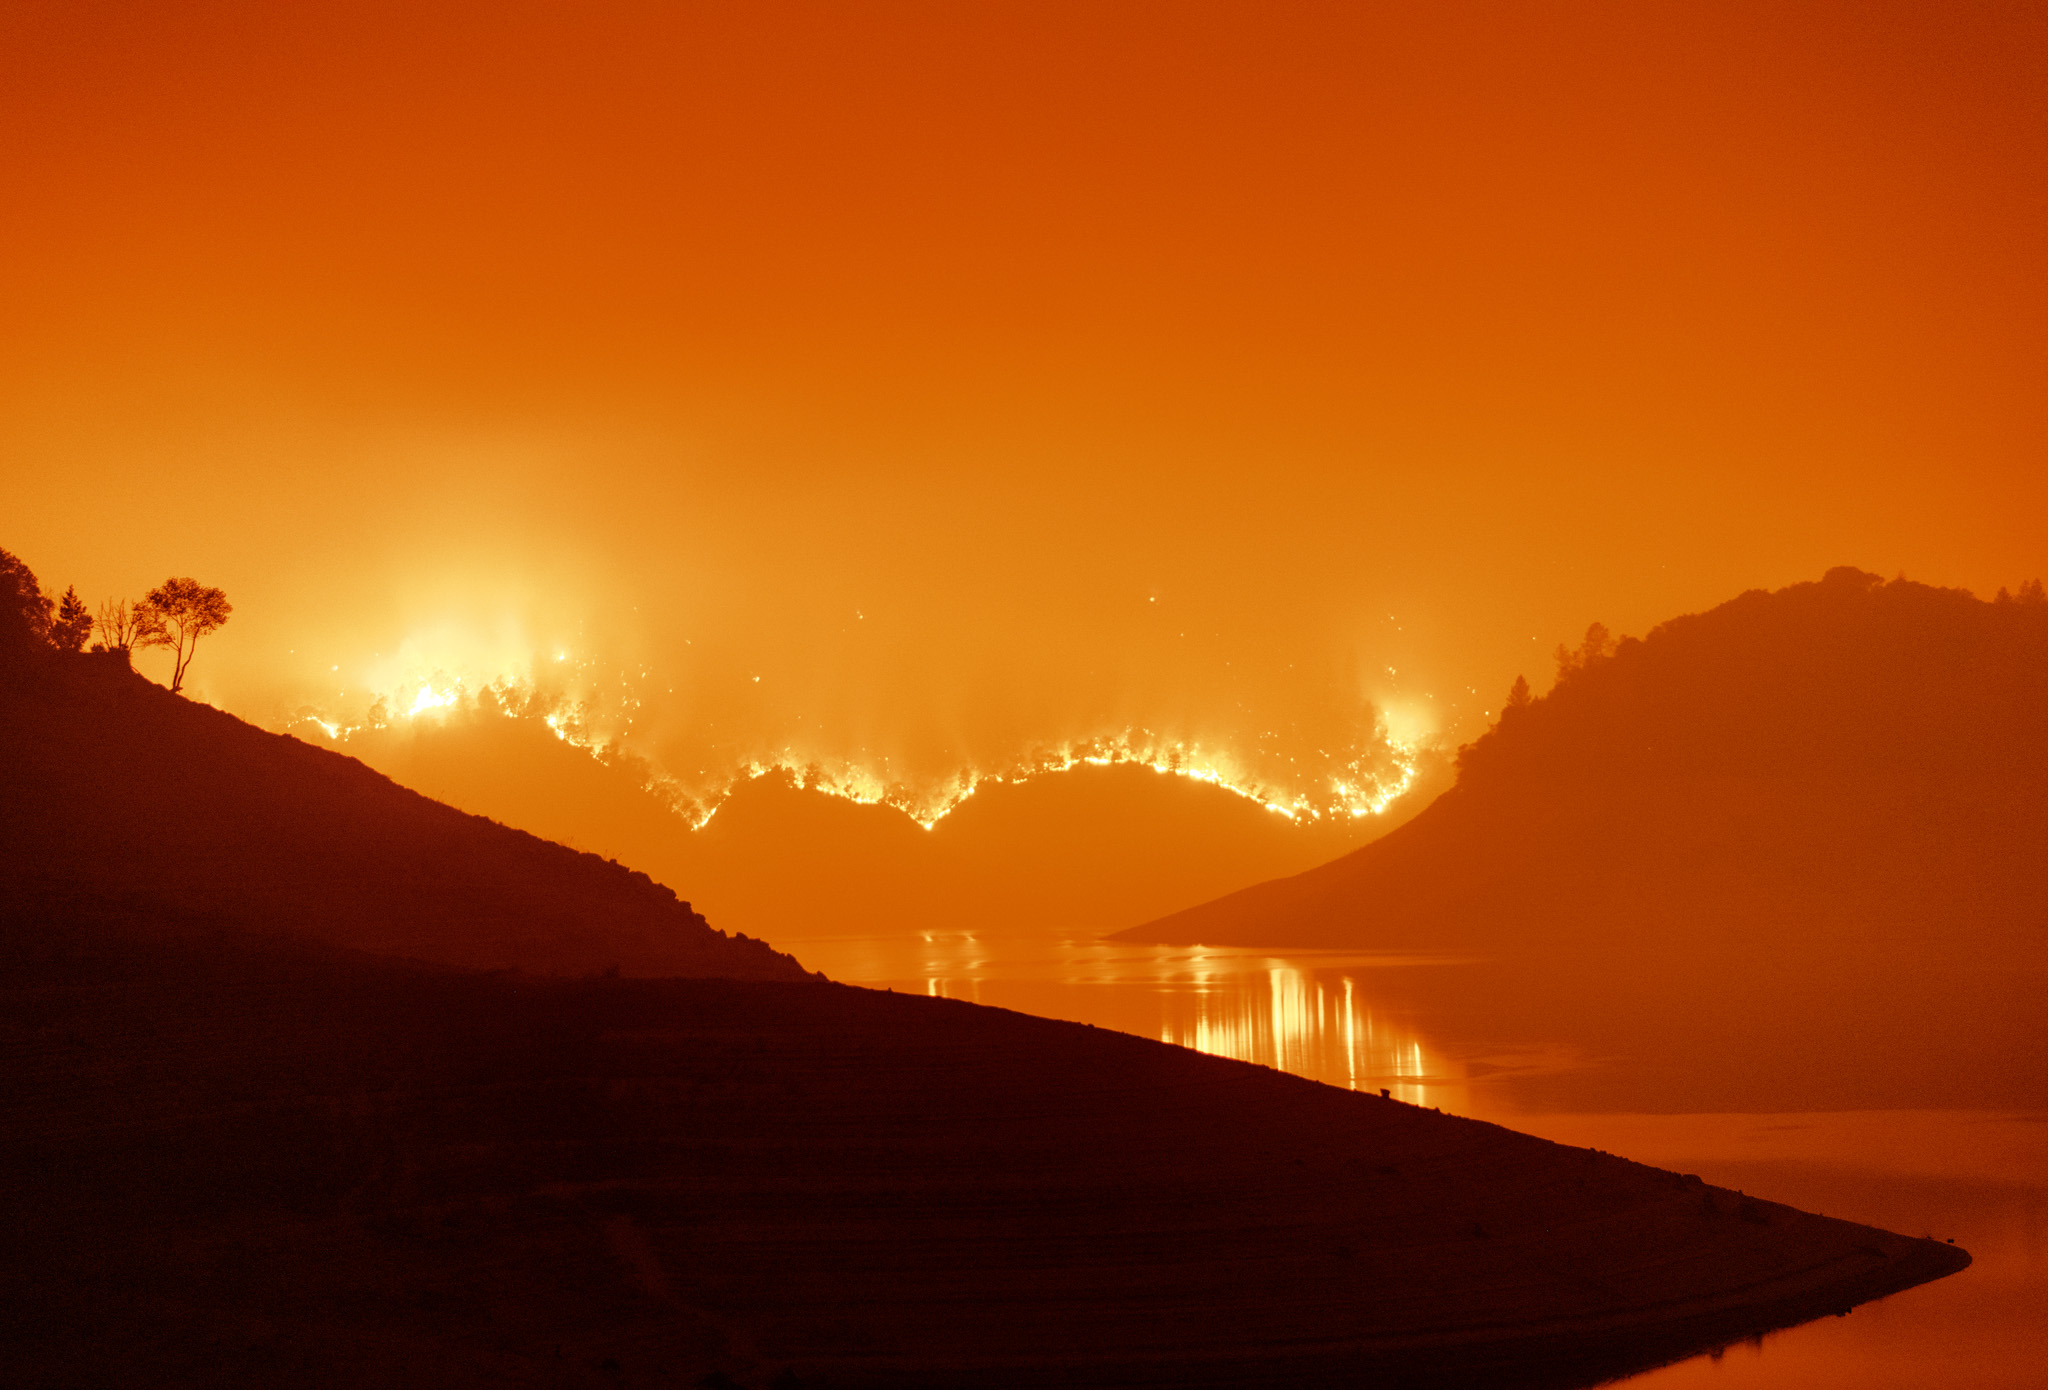 Picture of fires burning down a hillside, causing the landscape to turn a deep orange